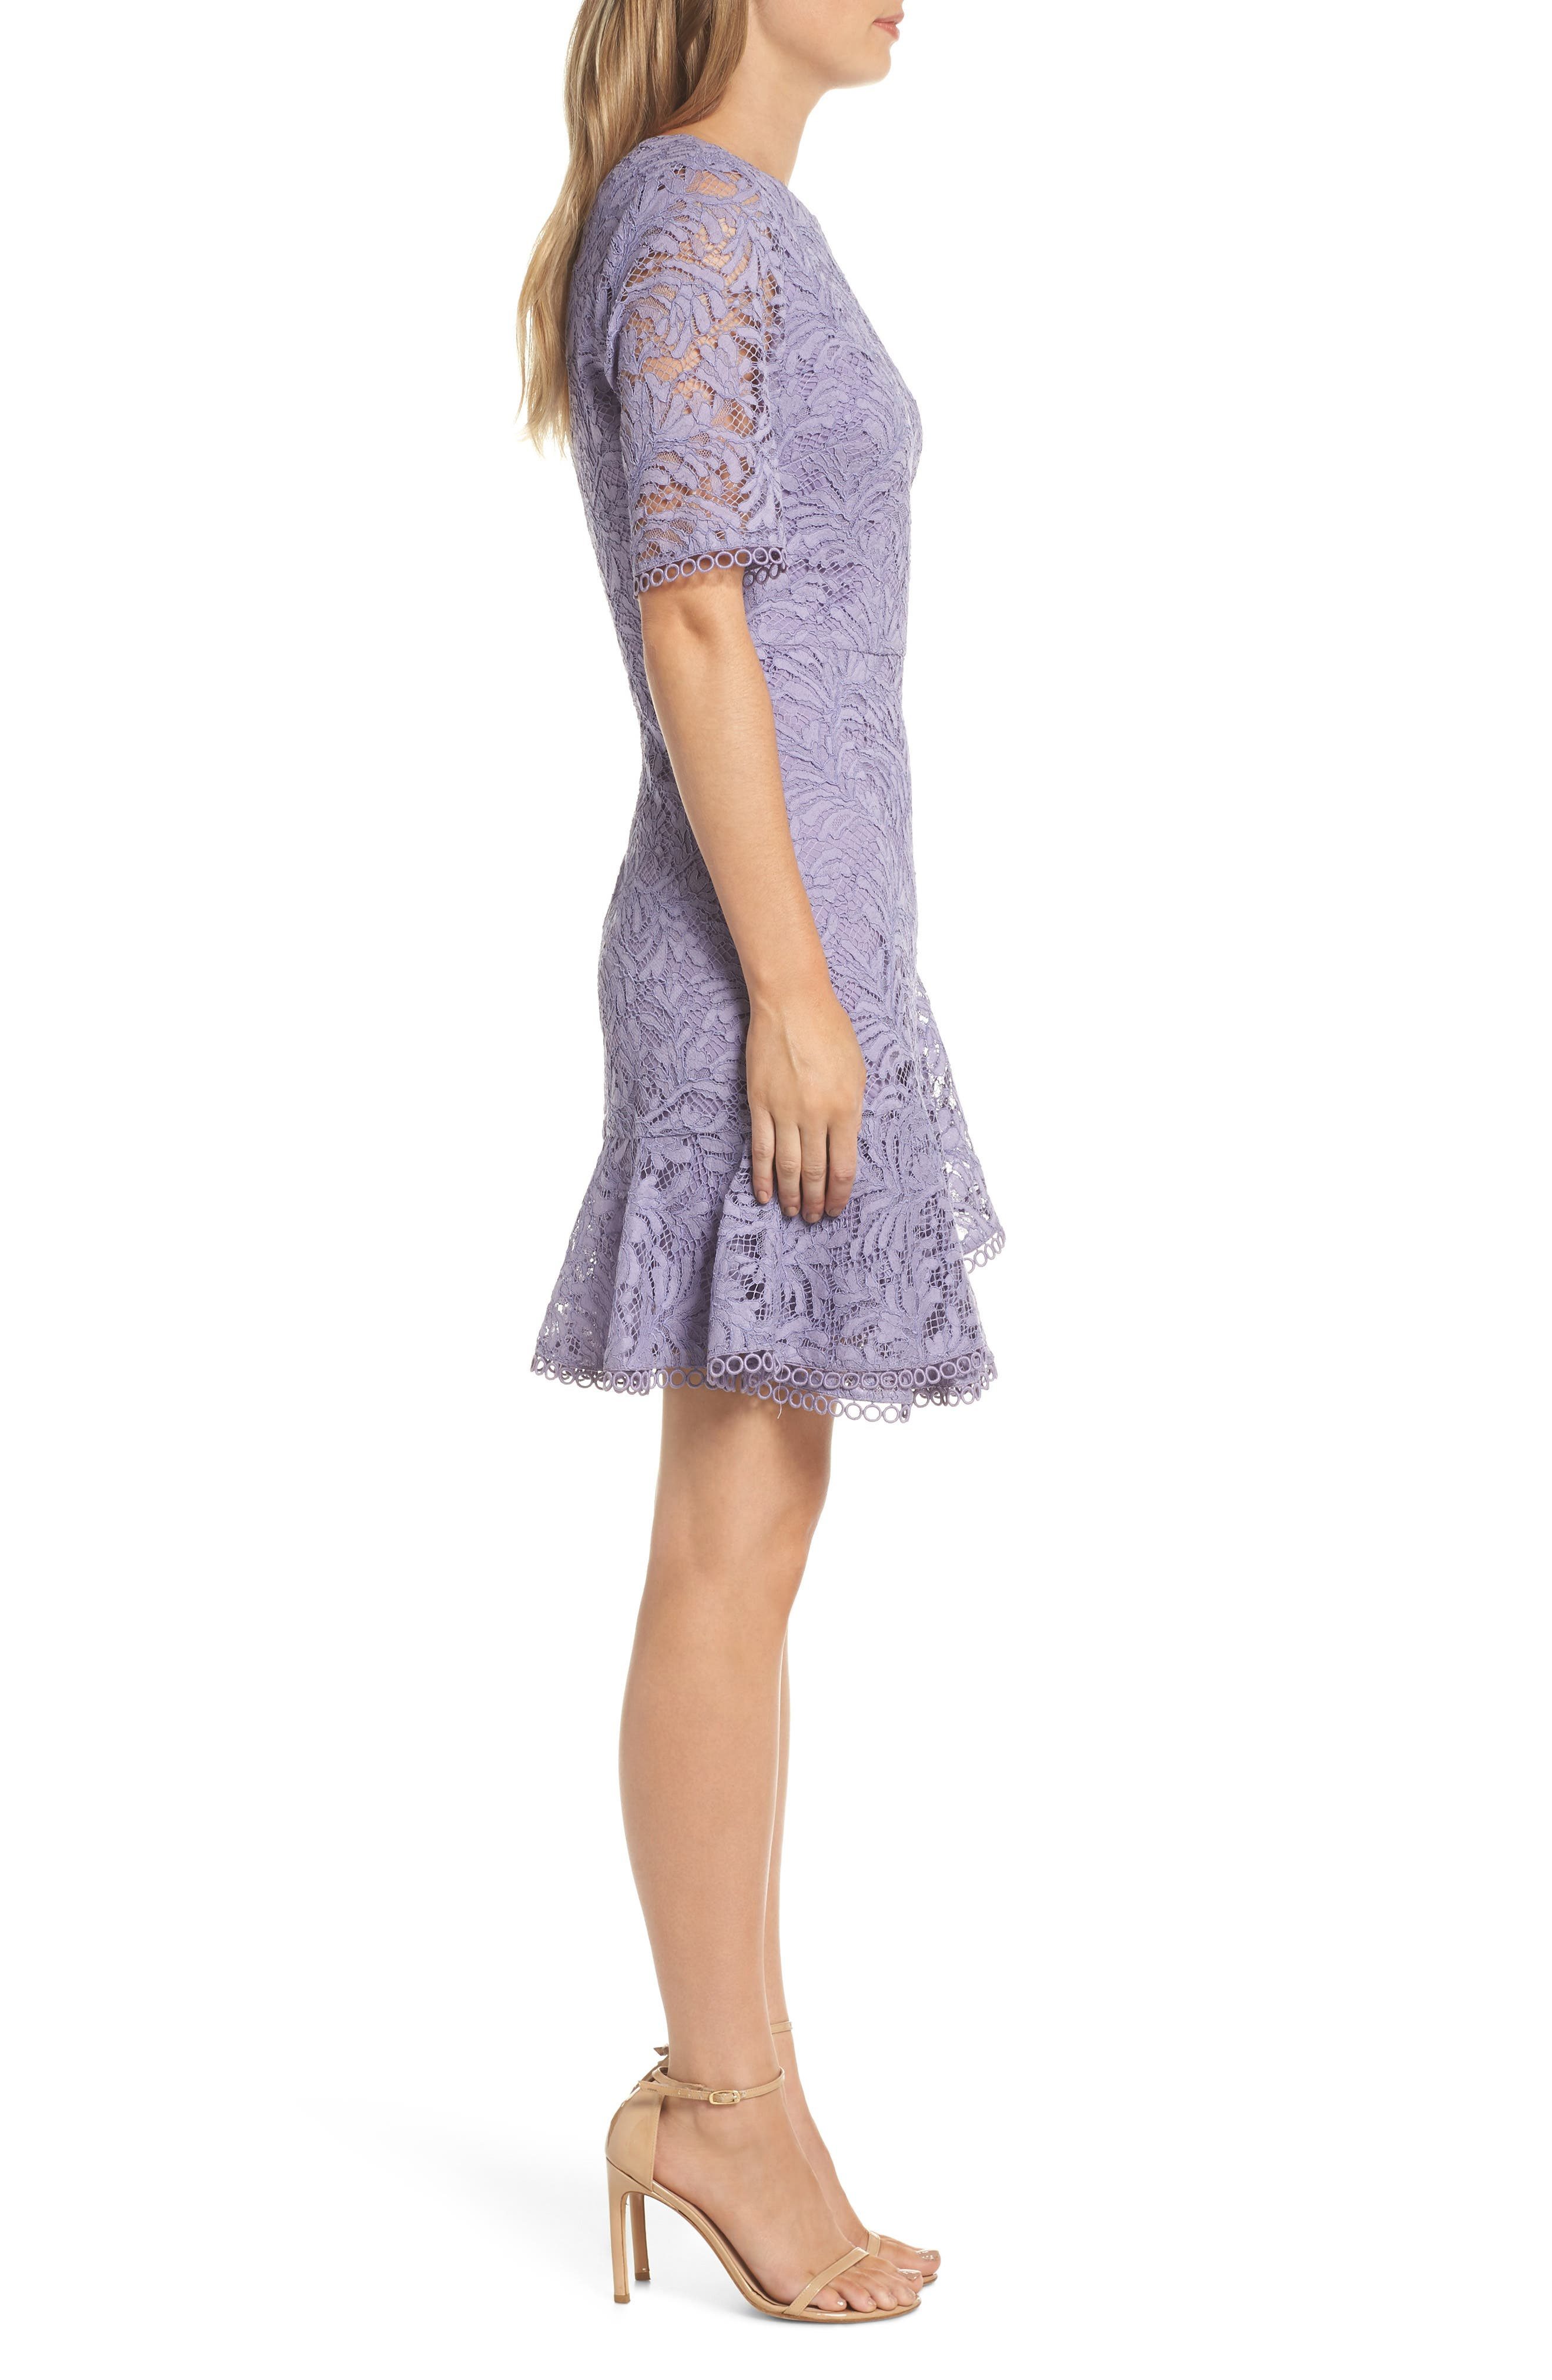 VINCE CAMUTO, Asymmetrical Ruffle Lace Fit & Flare Dress, Alternate thumbnail 4, color, 524